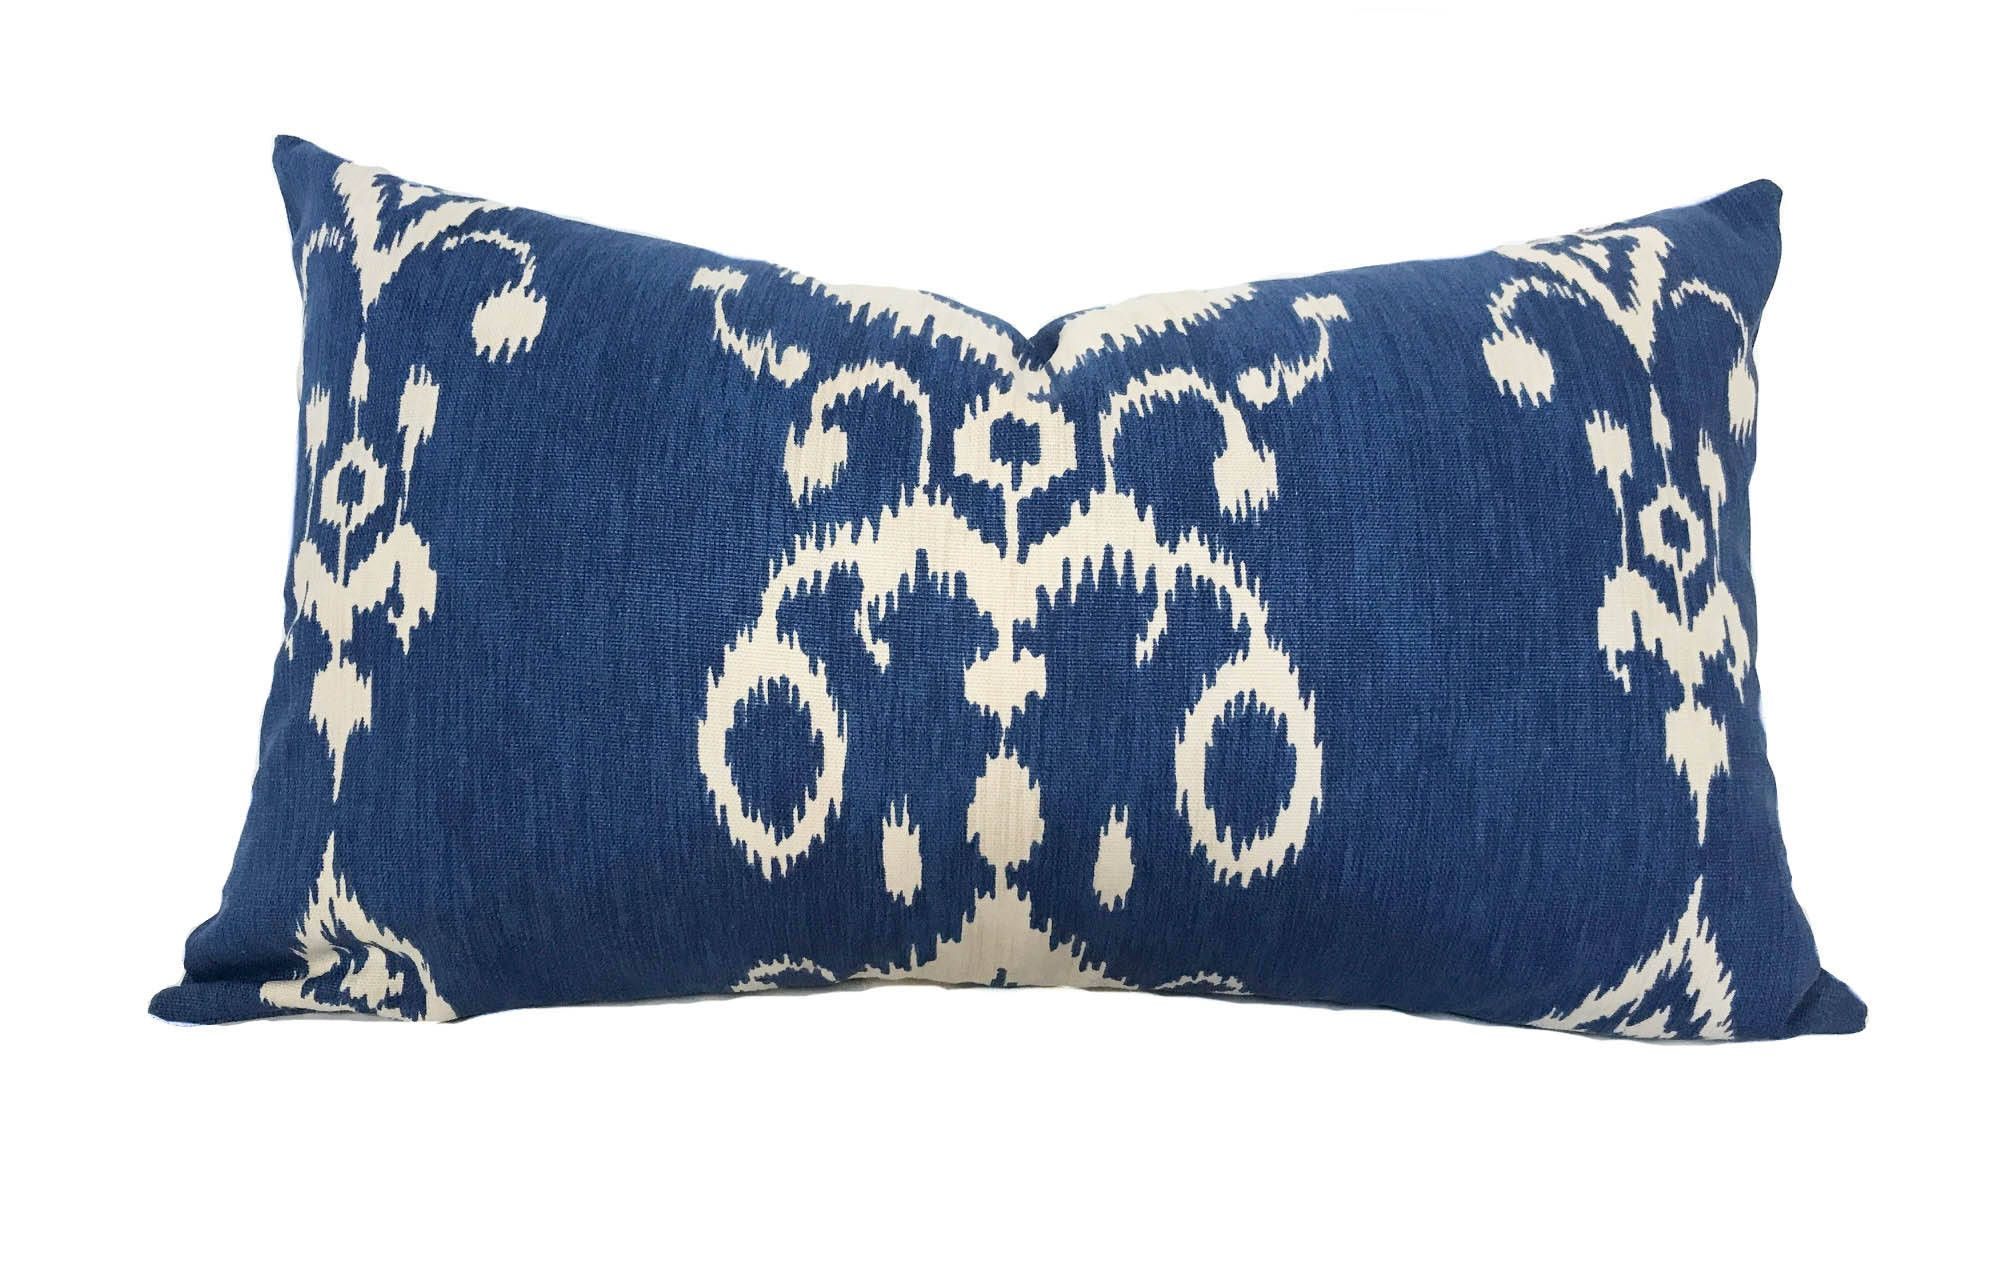 pillowcase of throw large decorative pillow pillows sham case modern blue size covers